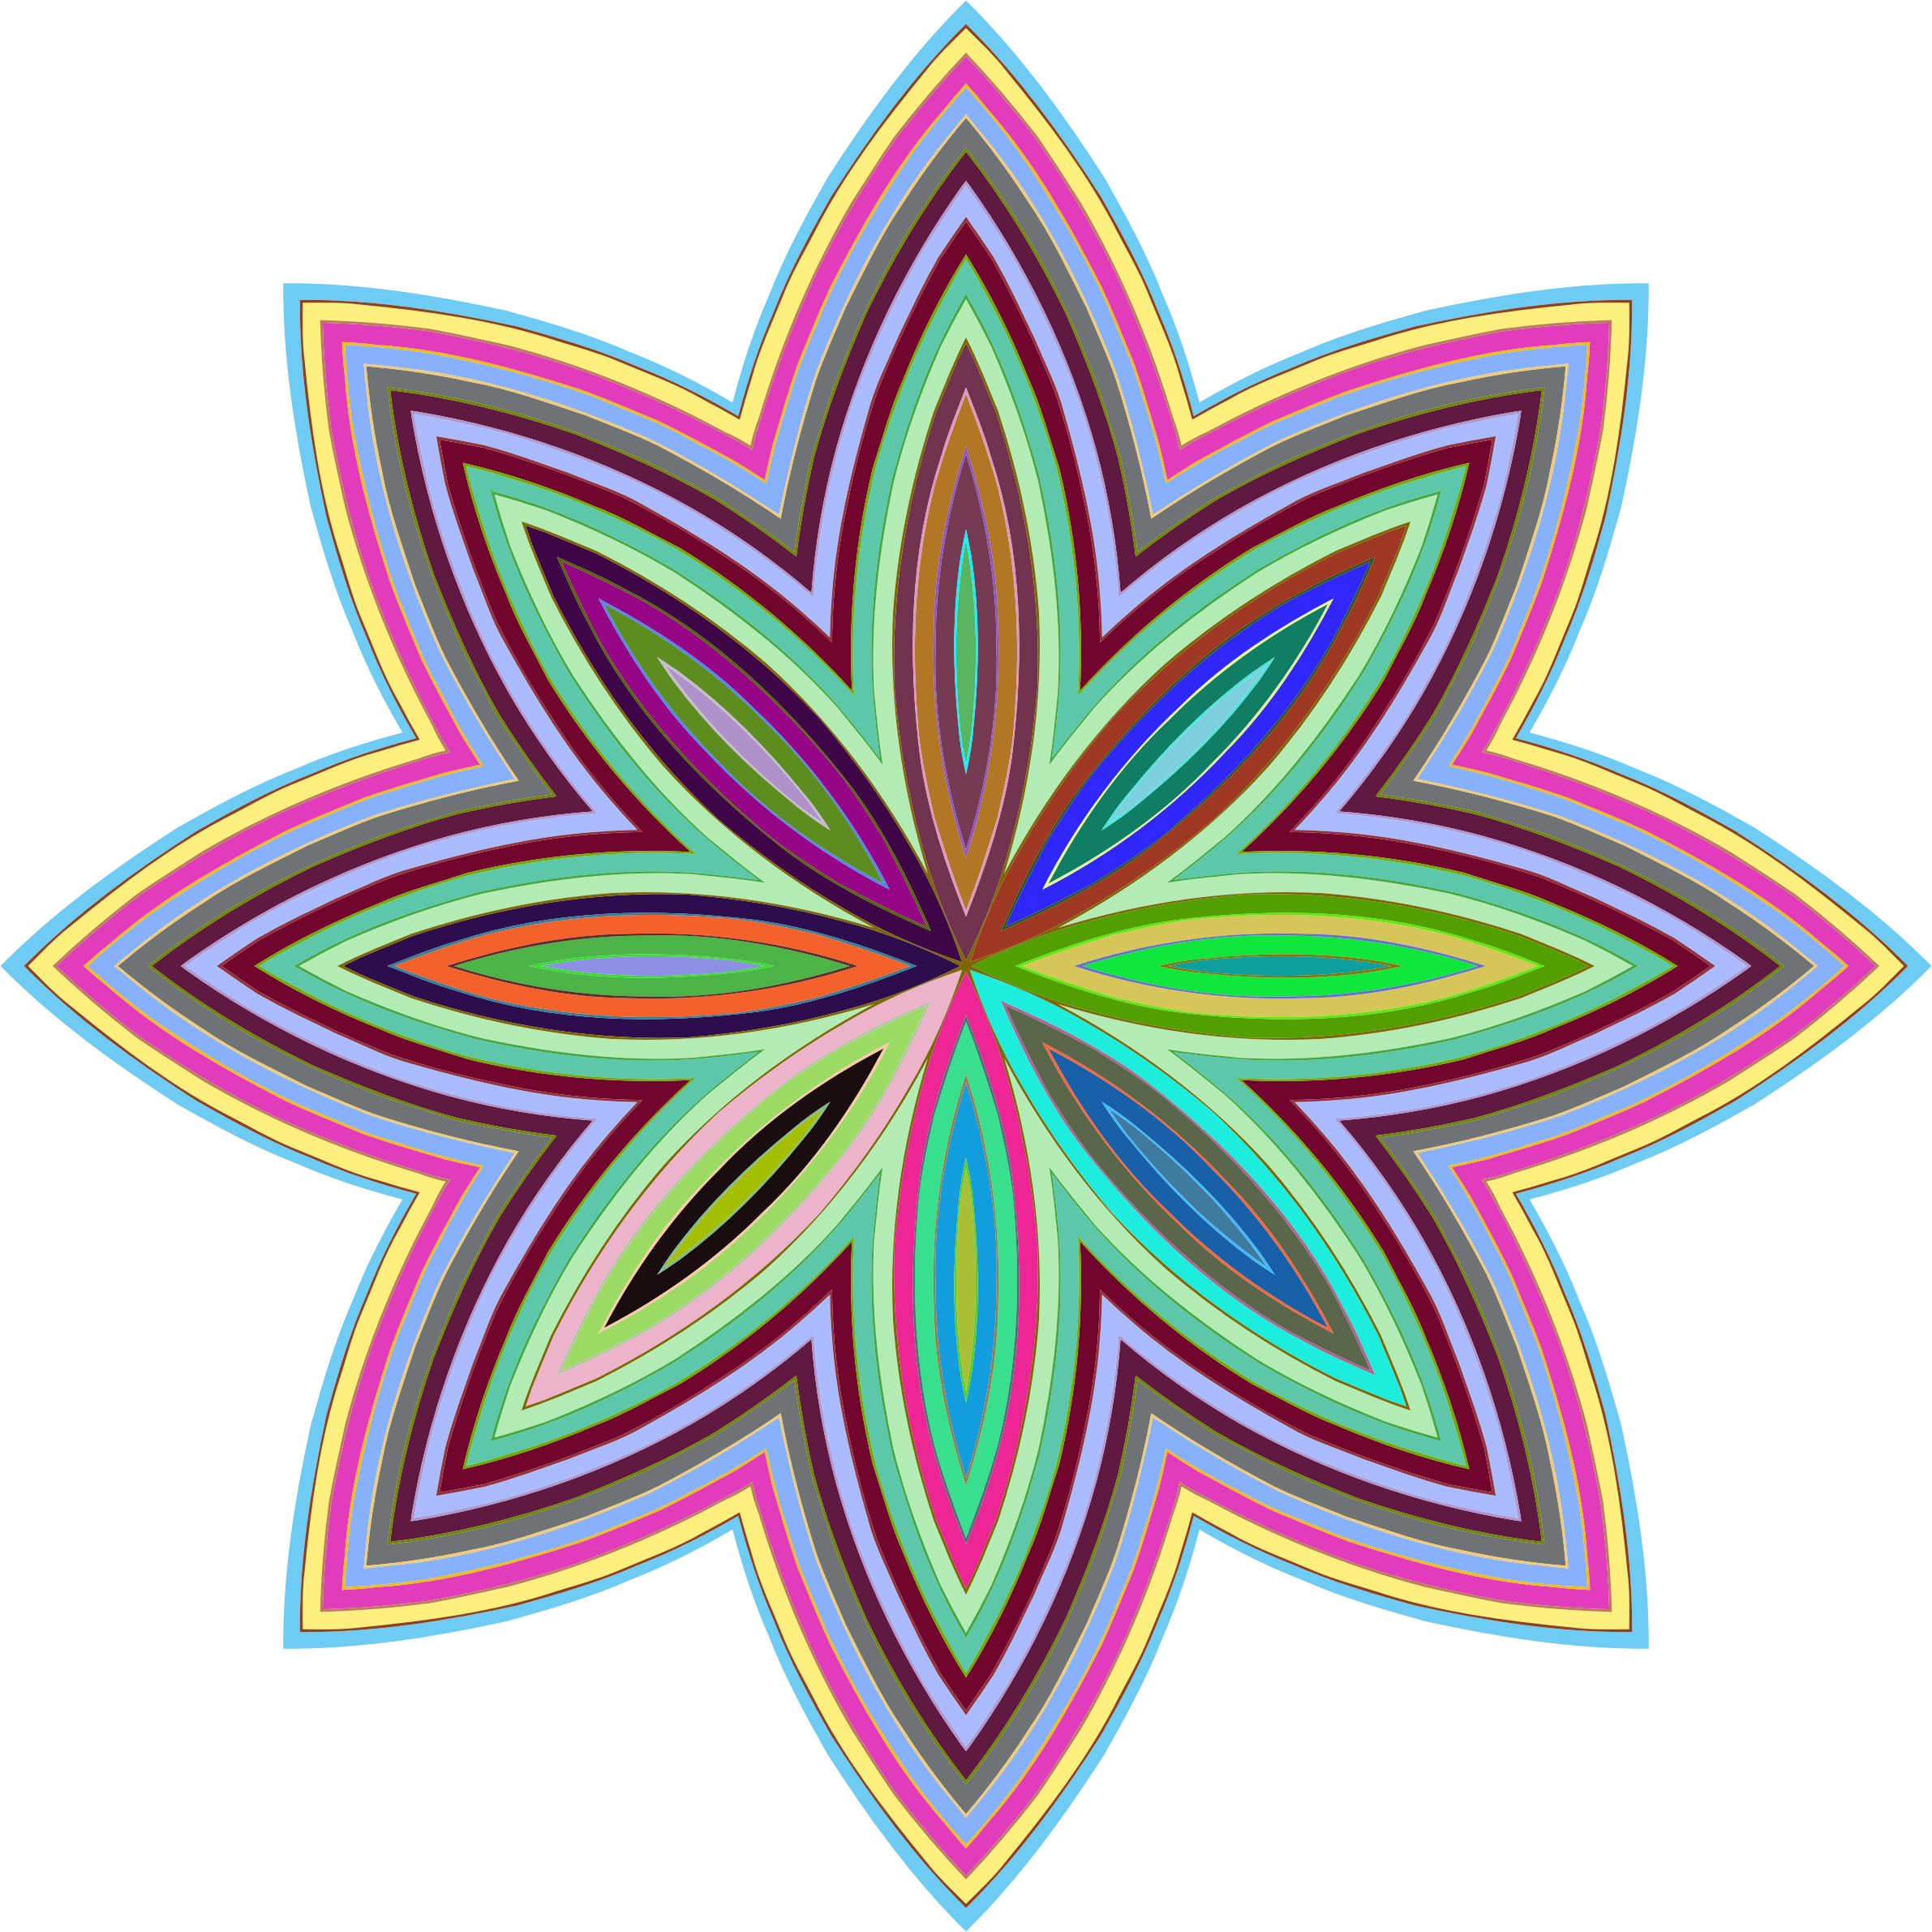 Prismatic Floral Line Art by GDJ